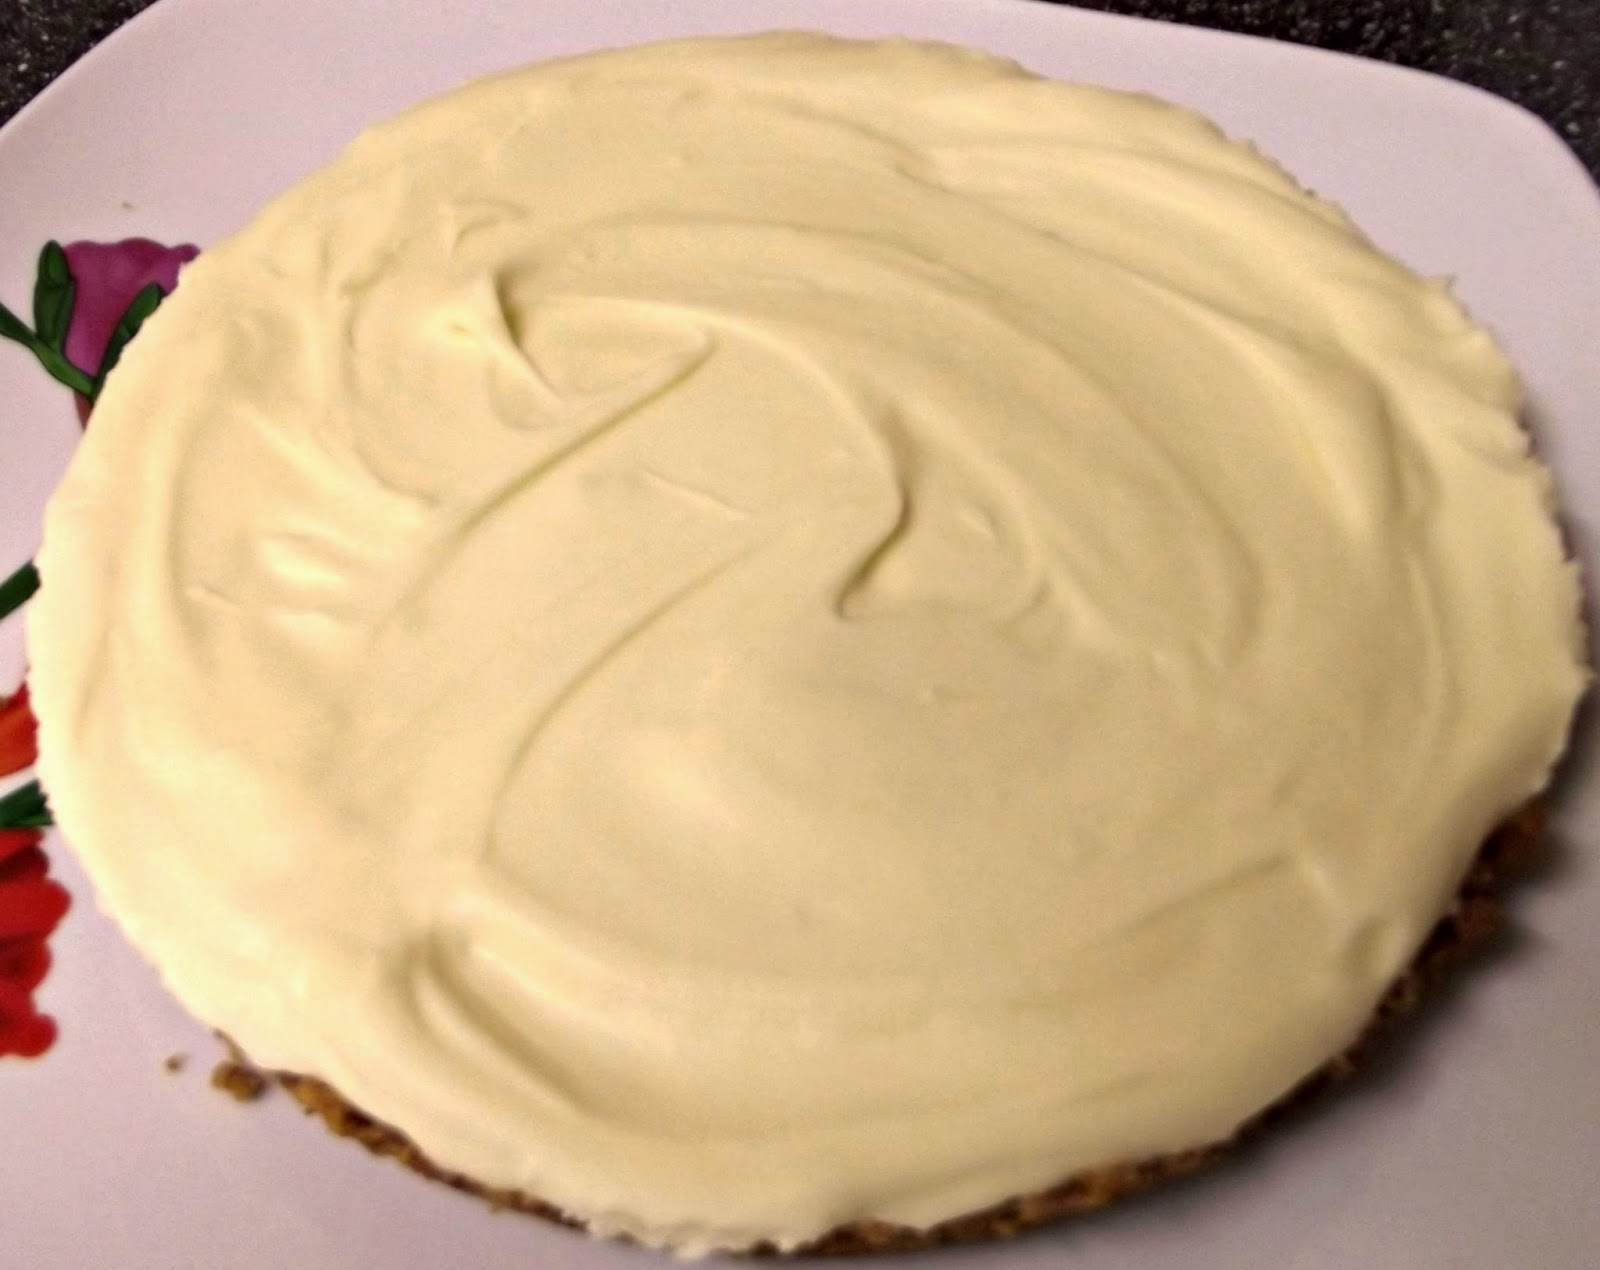 my cheesecake There's nothing like creamy homemade cheesecake you may be questioning the best way to check if it is done we're sharing our tried and true tips for perfectly baked cheesecake every time plus, get our favorite cheesecake recipes.